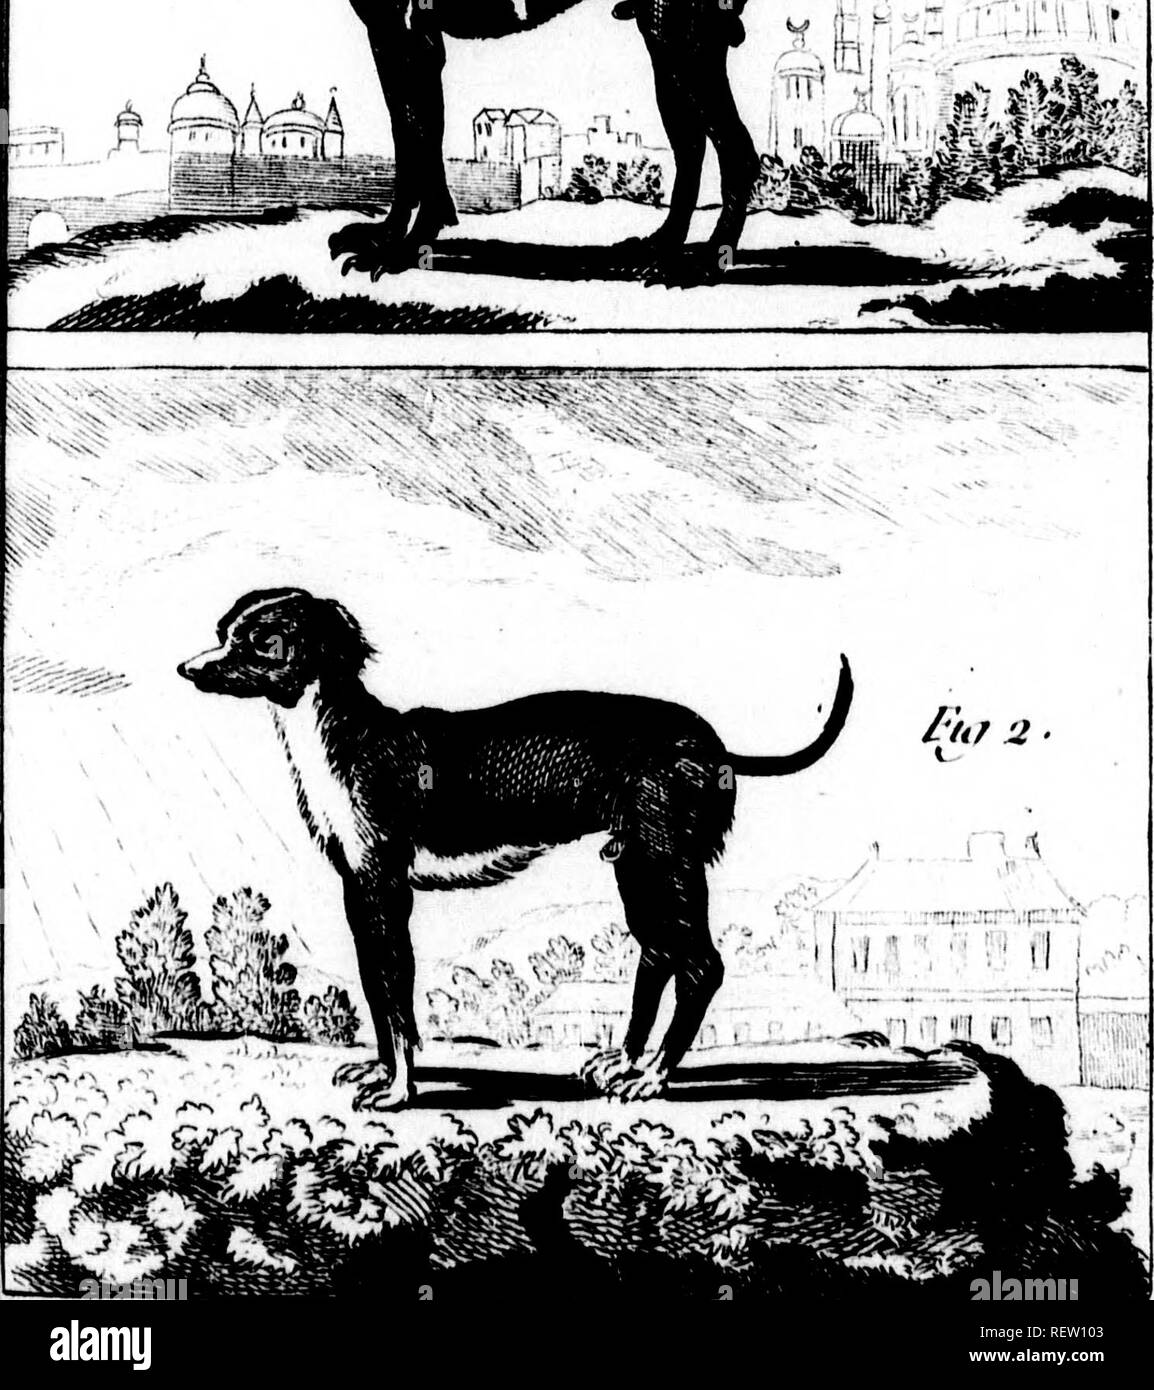 . Histoire naturelle, générale et particulière [microforme]. Sciences naturelles; Natural history. n LK CHIEN TURC /i < '7'z./l' '^fï^î^T'?^^ /.// (y. <'mKN TL'uc .Ml, ris n. Wunt y) ,'uil'. Please note that these images are extracted from scanned page images that may have been digitally enhanced for readability - coloration and appearance of these illustrations may not perfectly resemble the original work.. Buffon, Georges Louis Leclerc, comte de, 1707-1788. A Paris : De l'Imprimerie royale - Stock Image